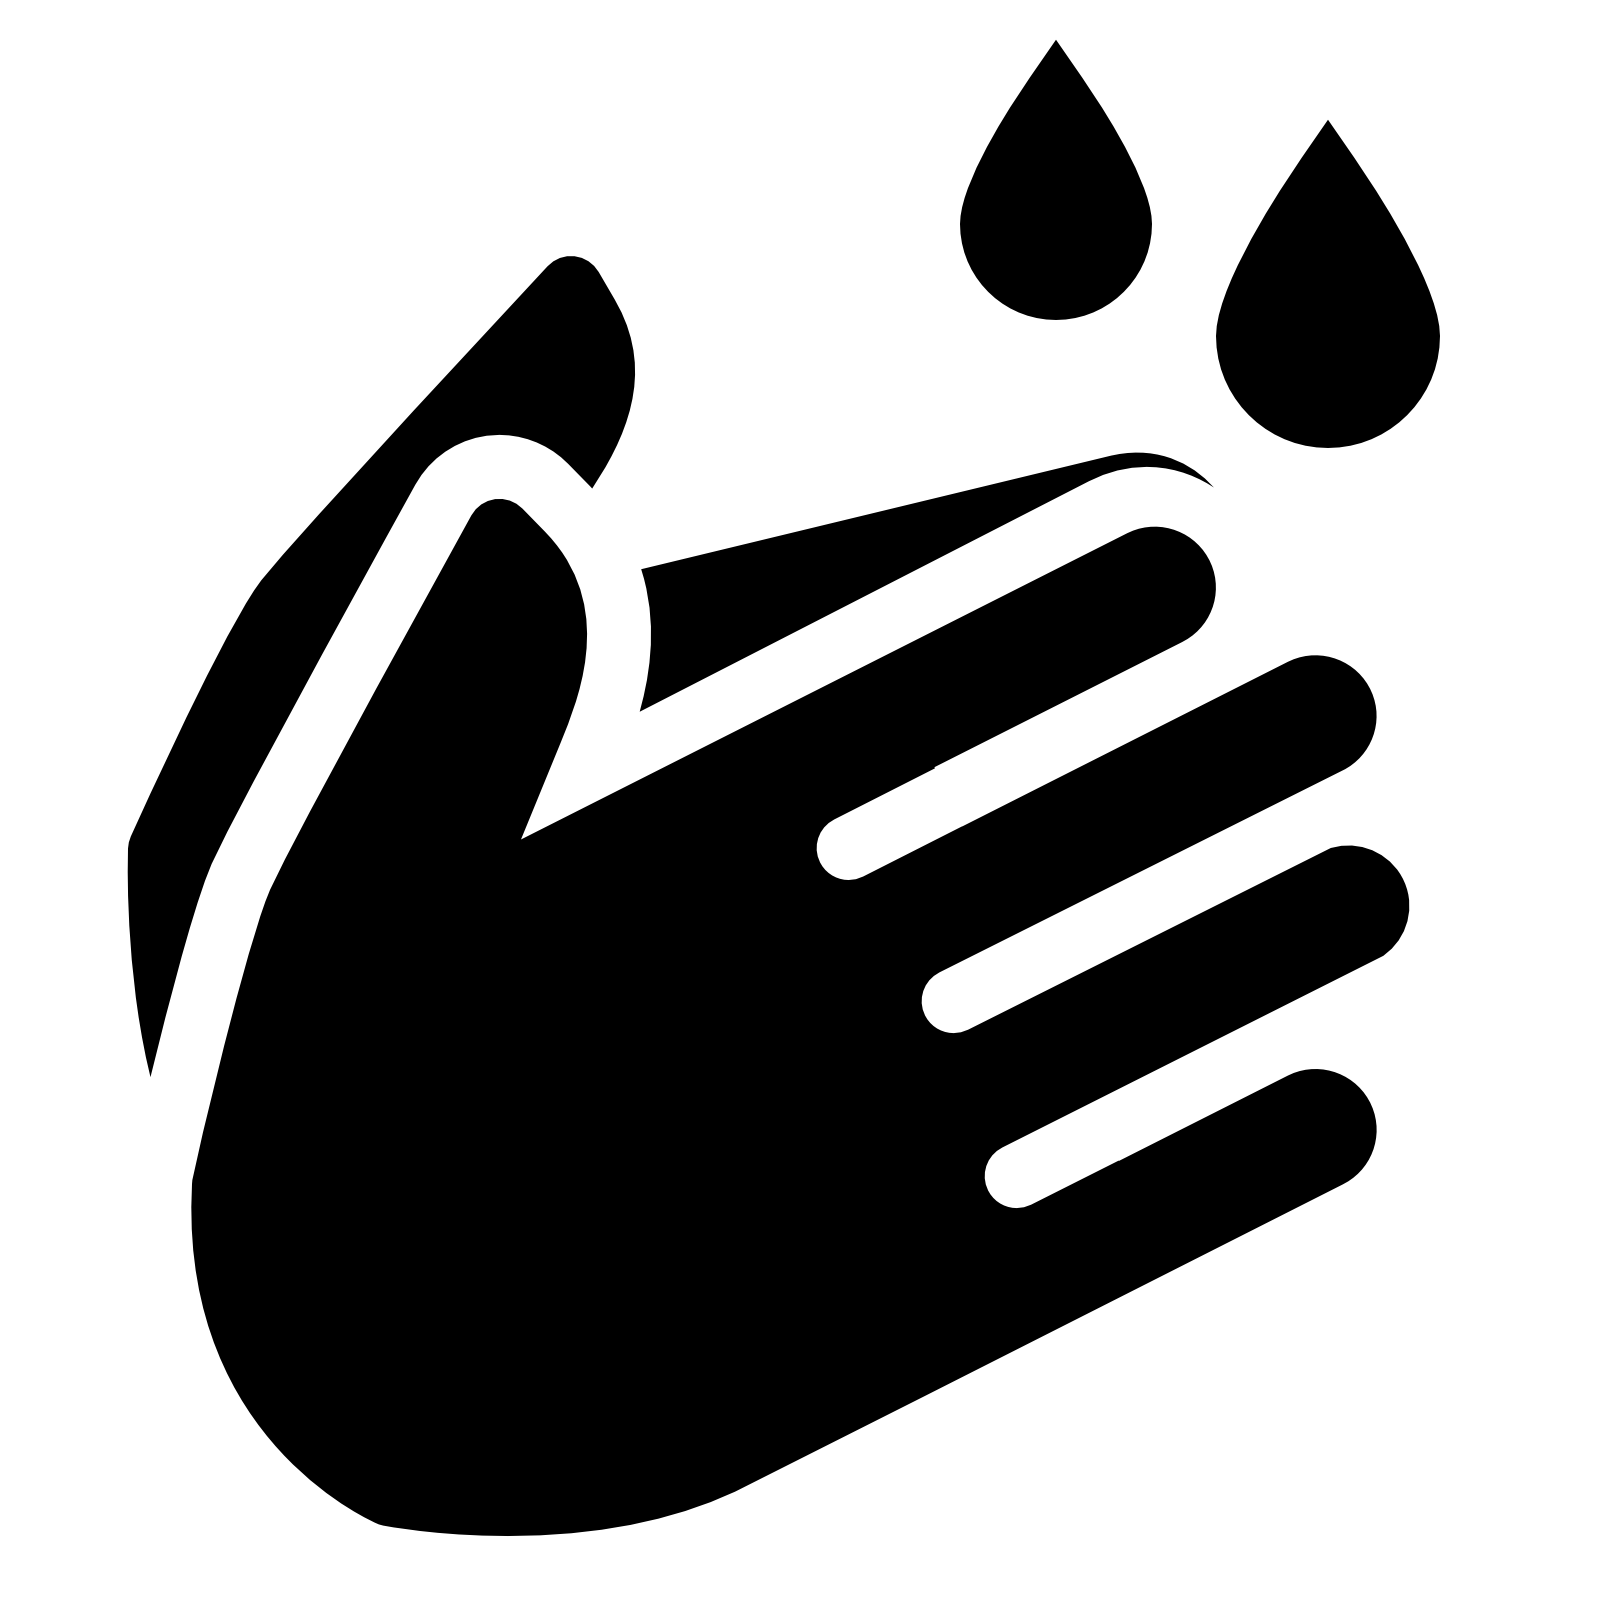 Hand washing clipart picture library PNG Hand Washing Transparent Hand Washing.PNG Images. | PlusPNG picture library